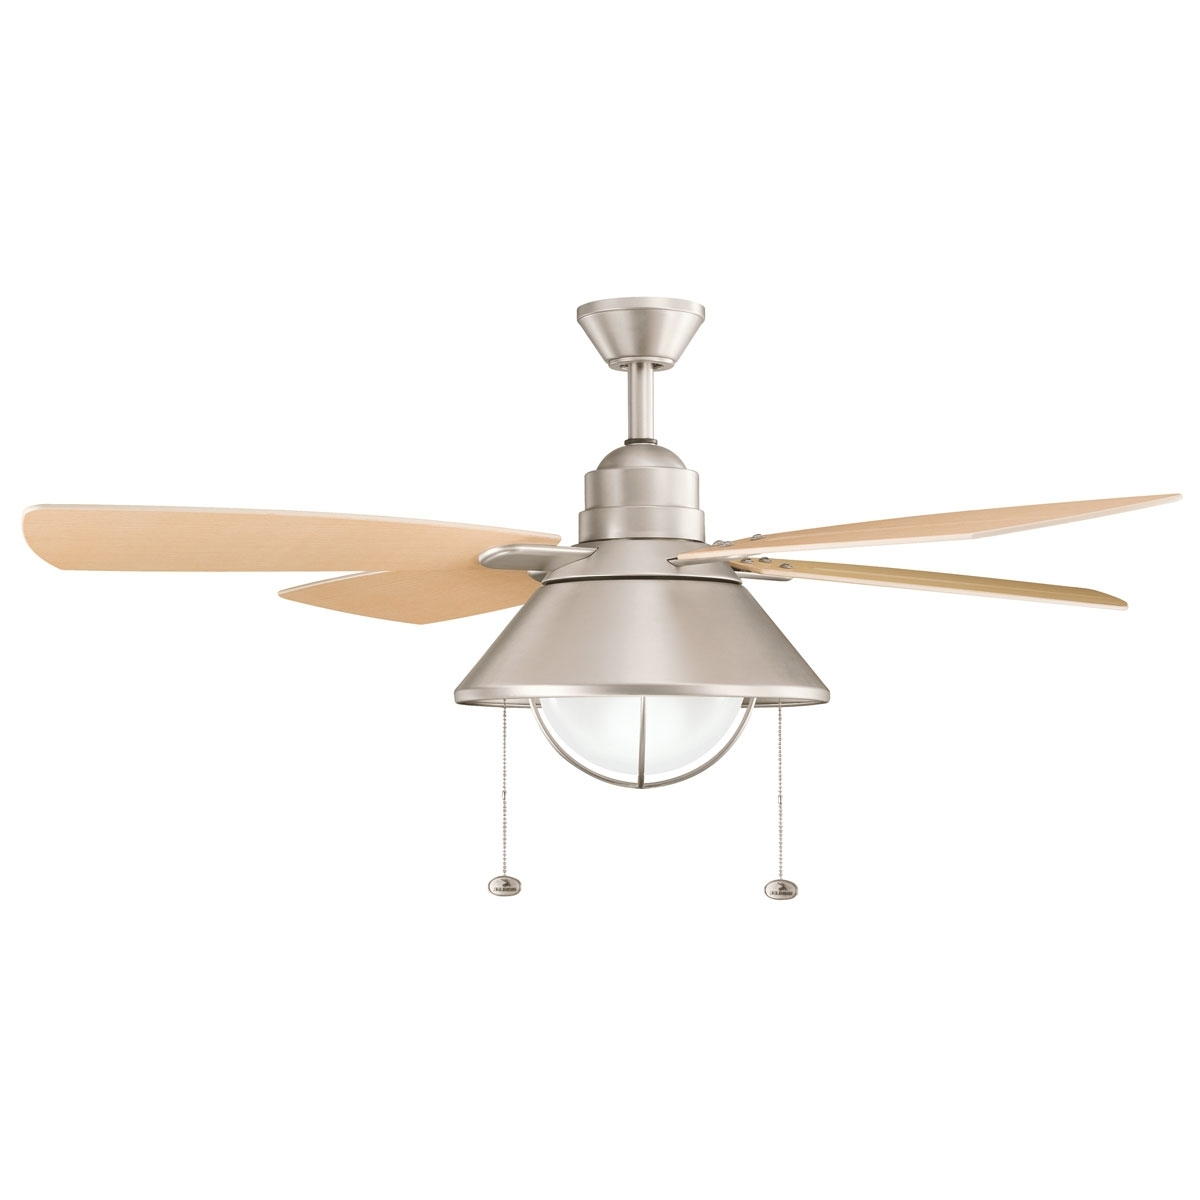 Fashionable Outdoor Ceiling Fans Wet Rated With Light – Outdoor Lighting Ideas Throughout Damp Rated Outdoor Ceiling Fans (View 20 of 20)